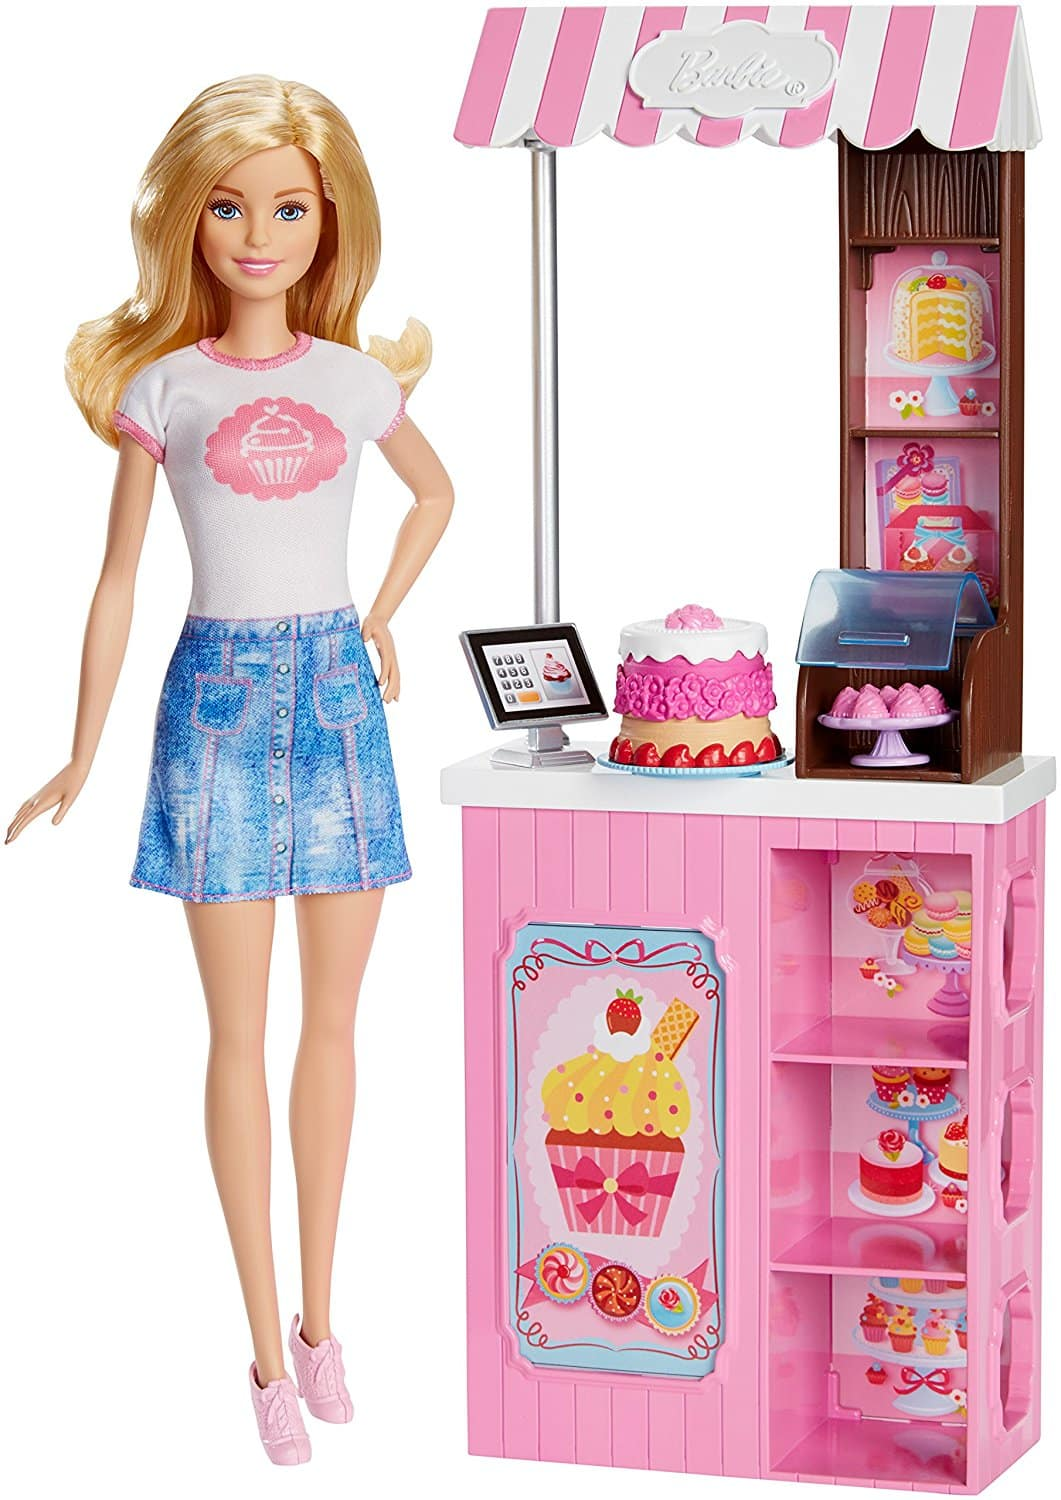 Barbie Careers Bakery Shop Playset With Blonde Doll Barbie Collectibles